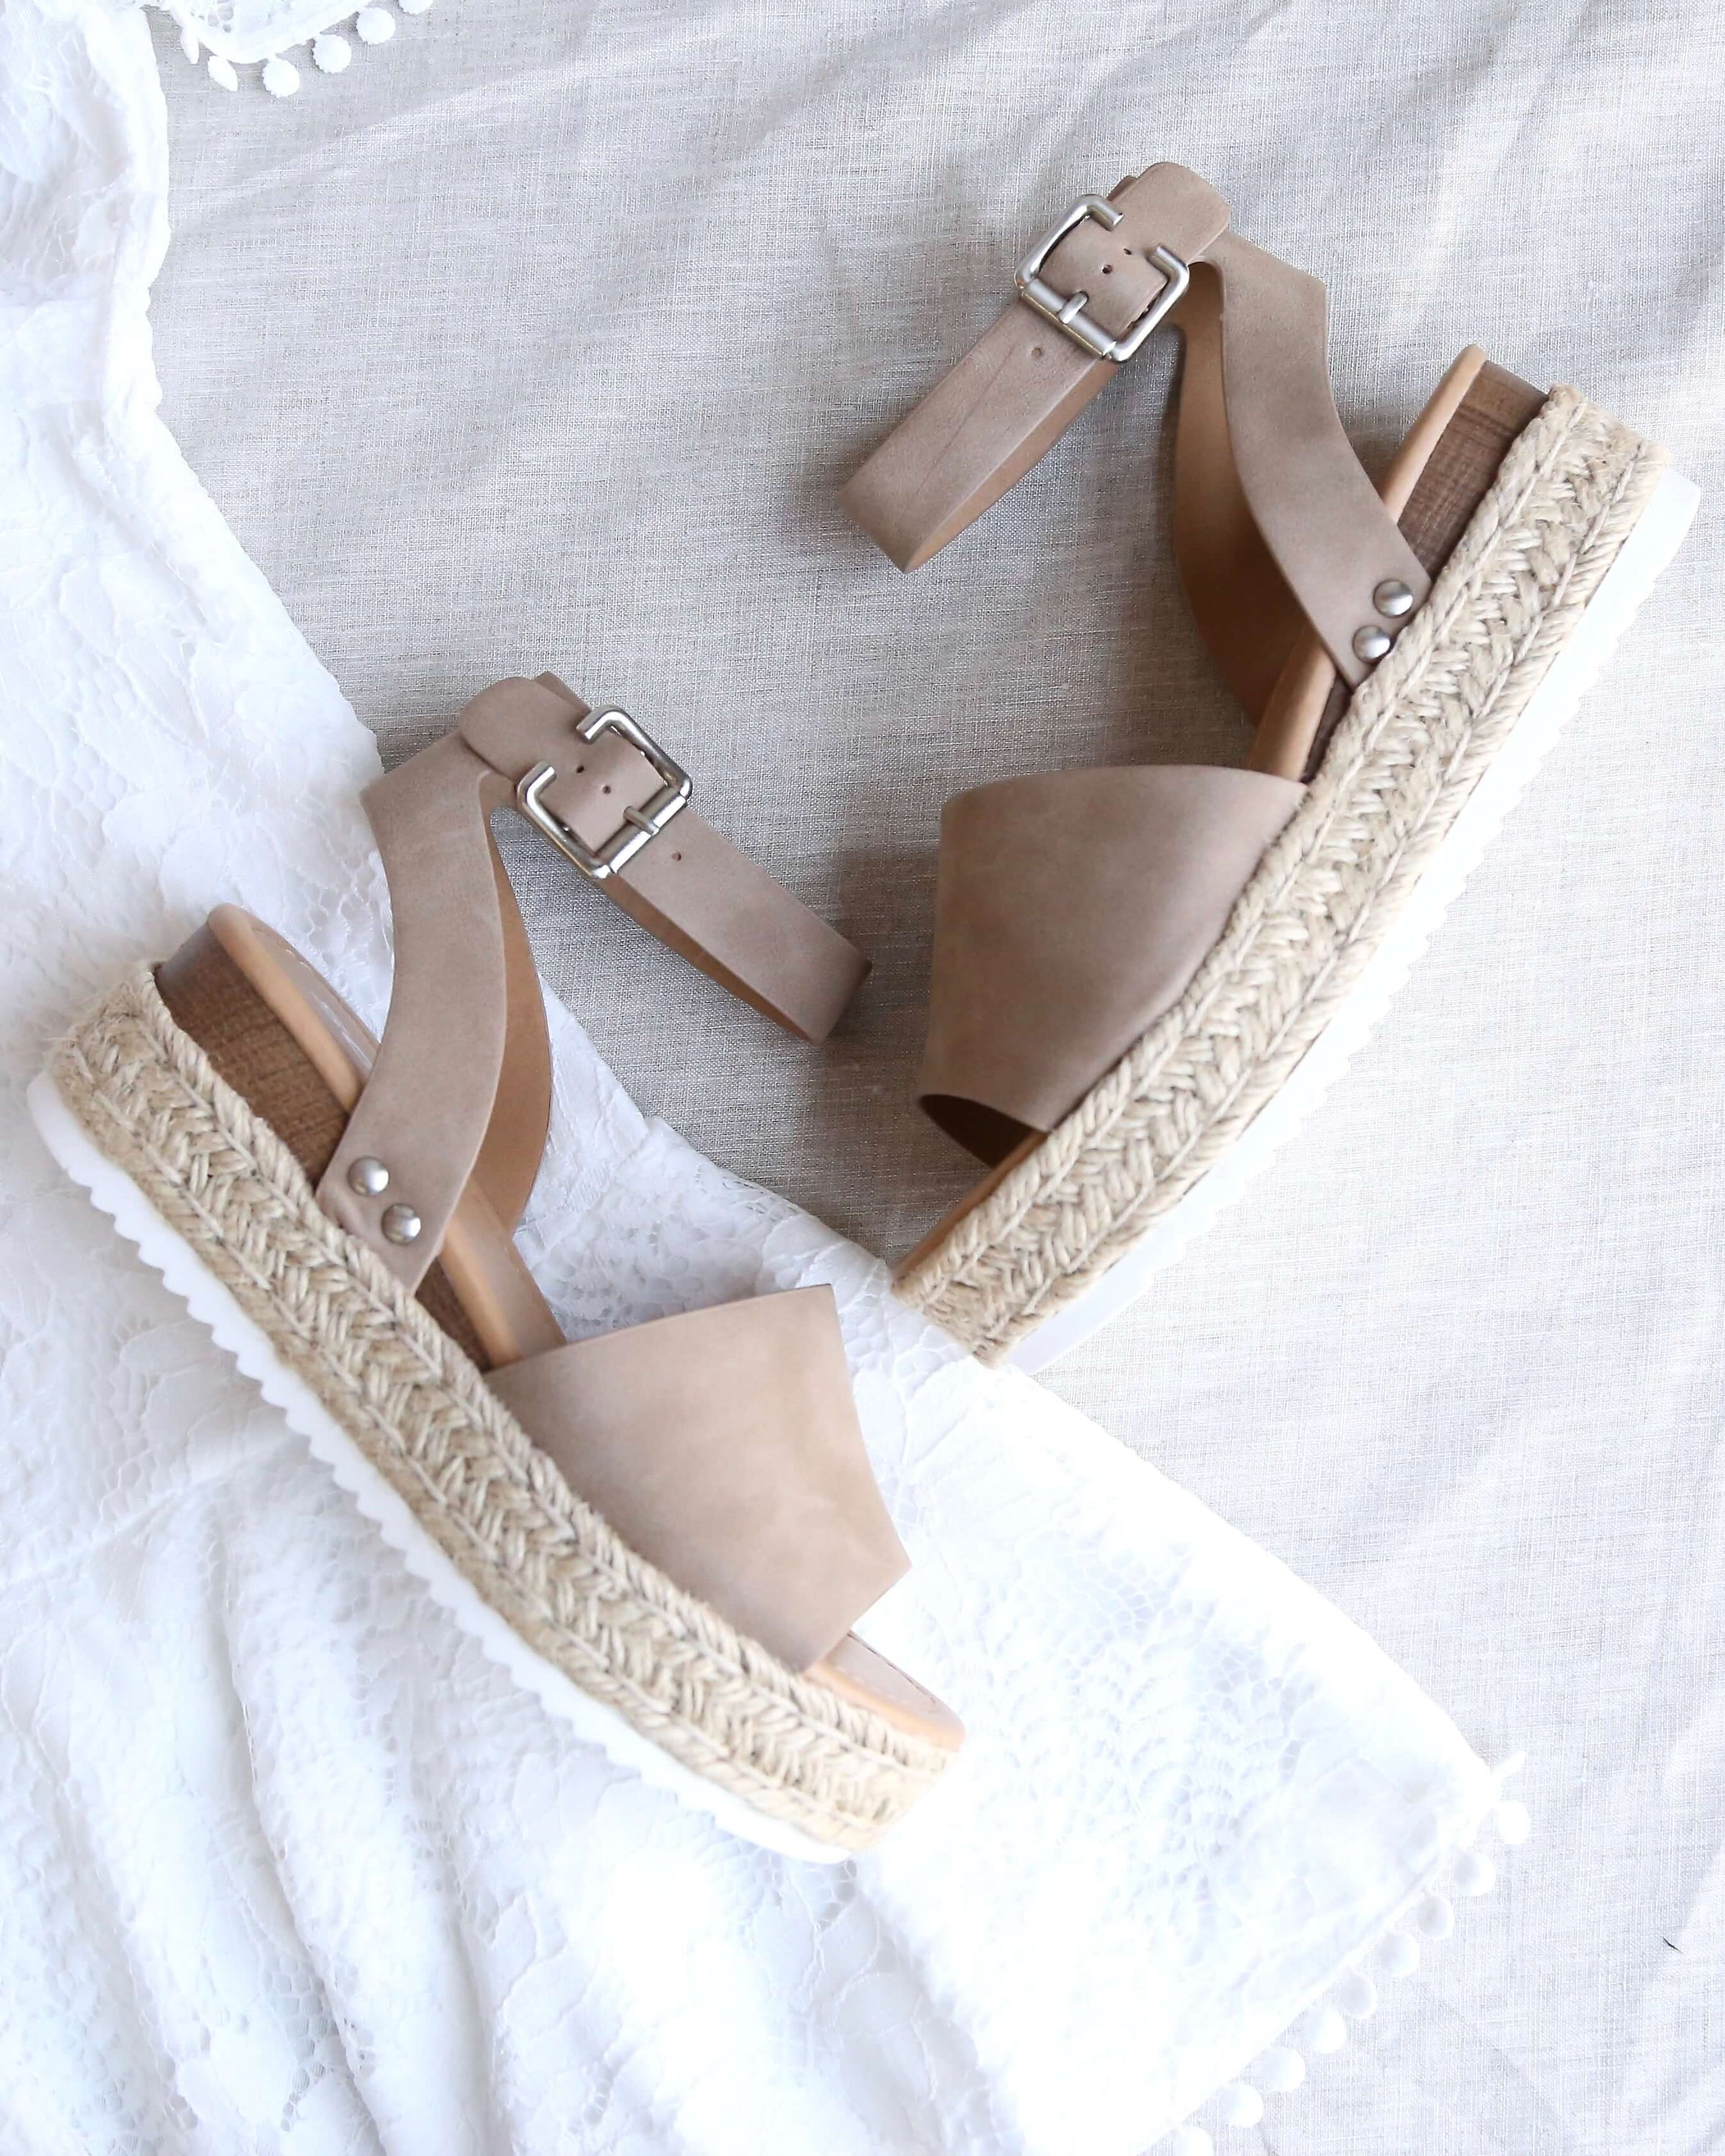 c851c0dbc90 Trendy Sporty Flatfrom Espadrille Sandal with Adjustable Ankle Strap i